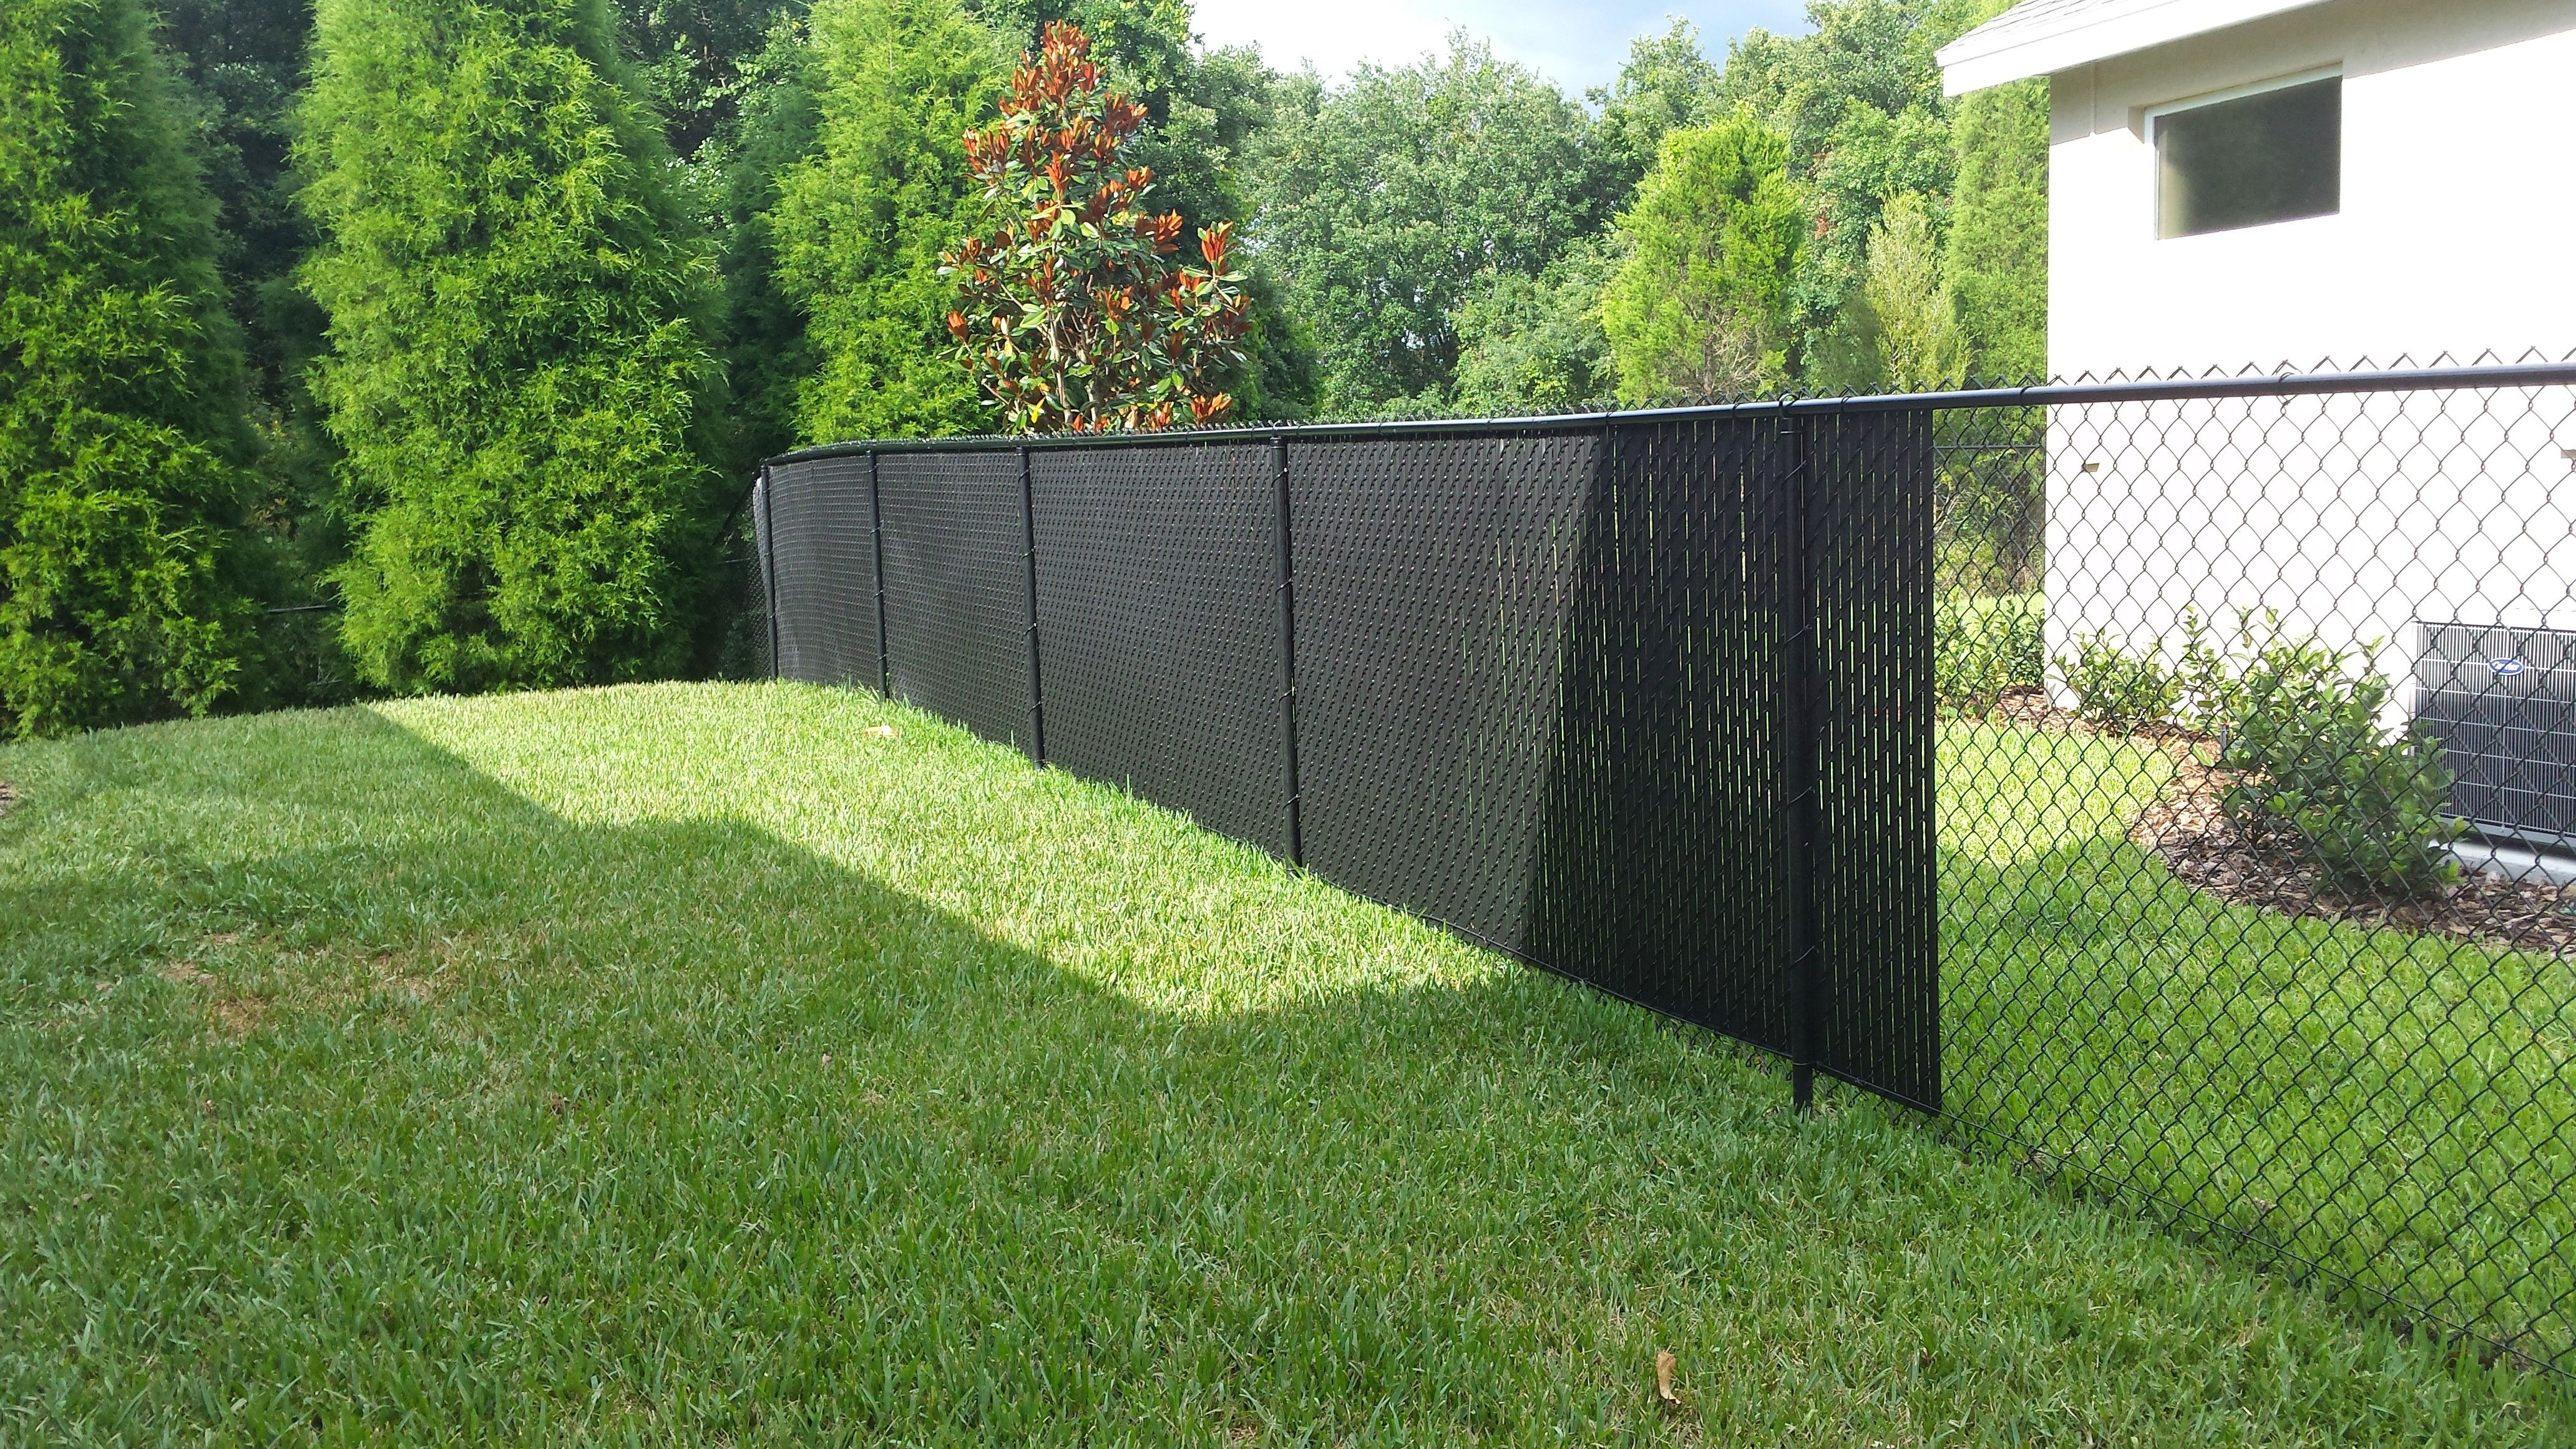 cyclone fence privacy slats • fence ideas site